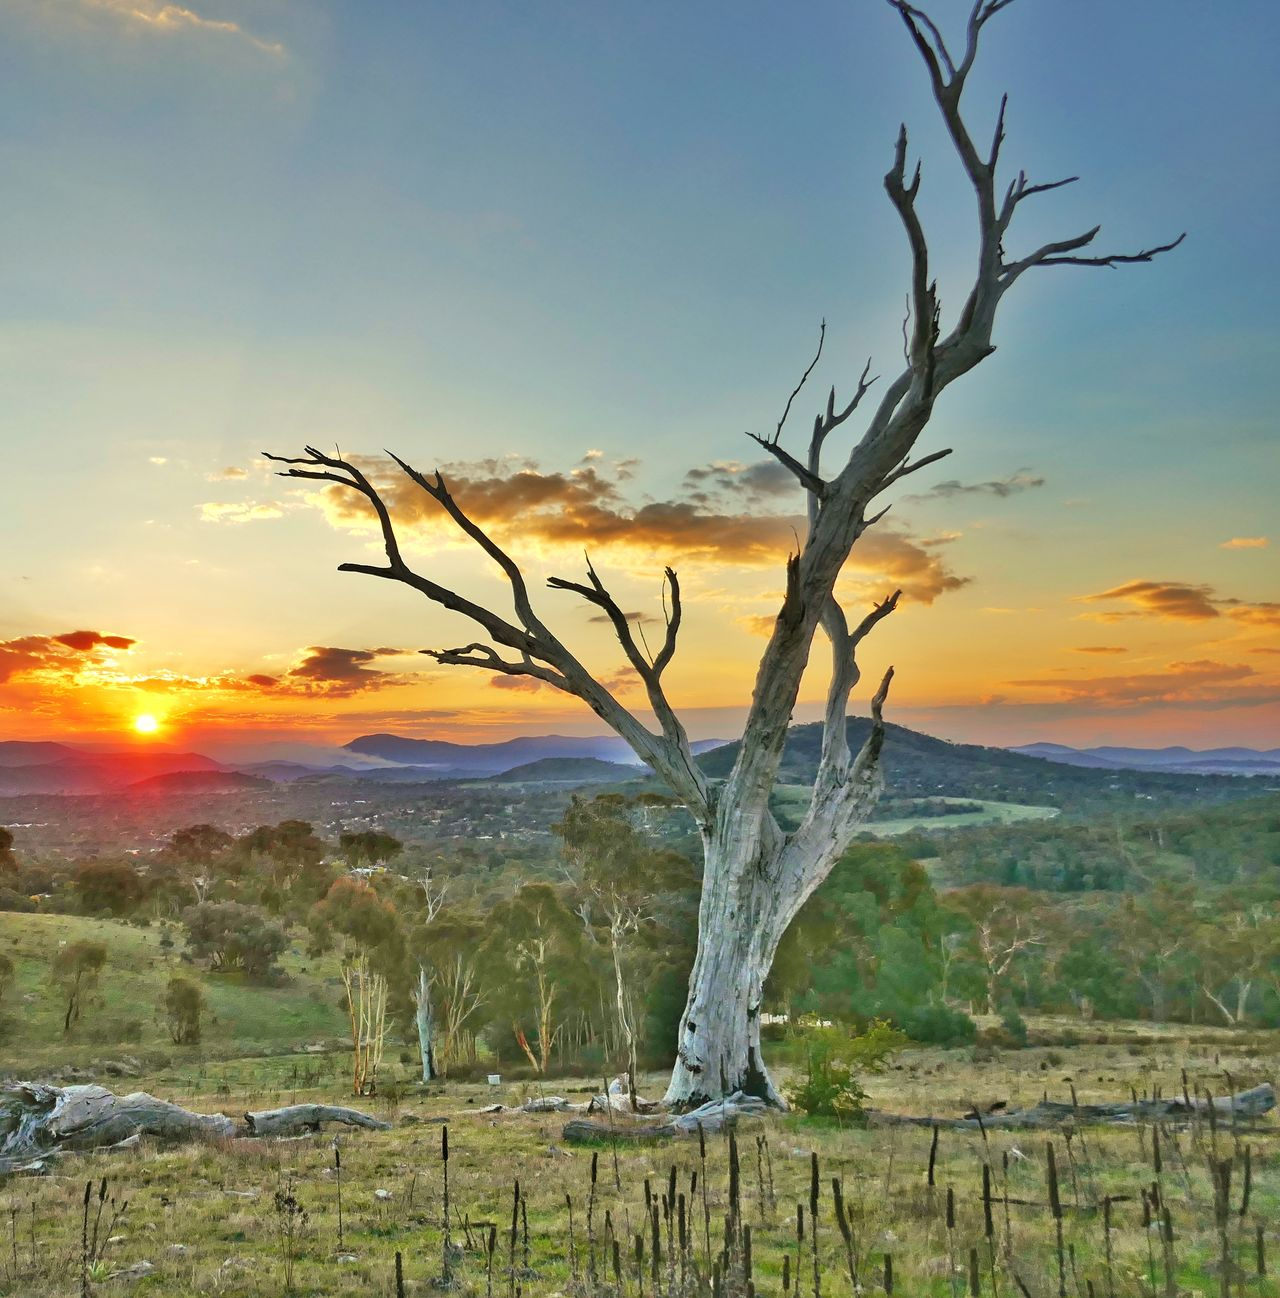 Sunset Landscape Tree Sun No People Outdoors Australian Bush This Is Where I Live Australia Colours Of Nature The Great Outdoors - 2017 EyeEm Awards